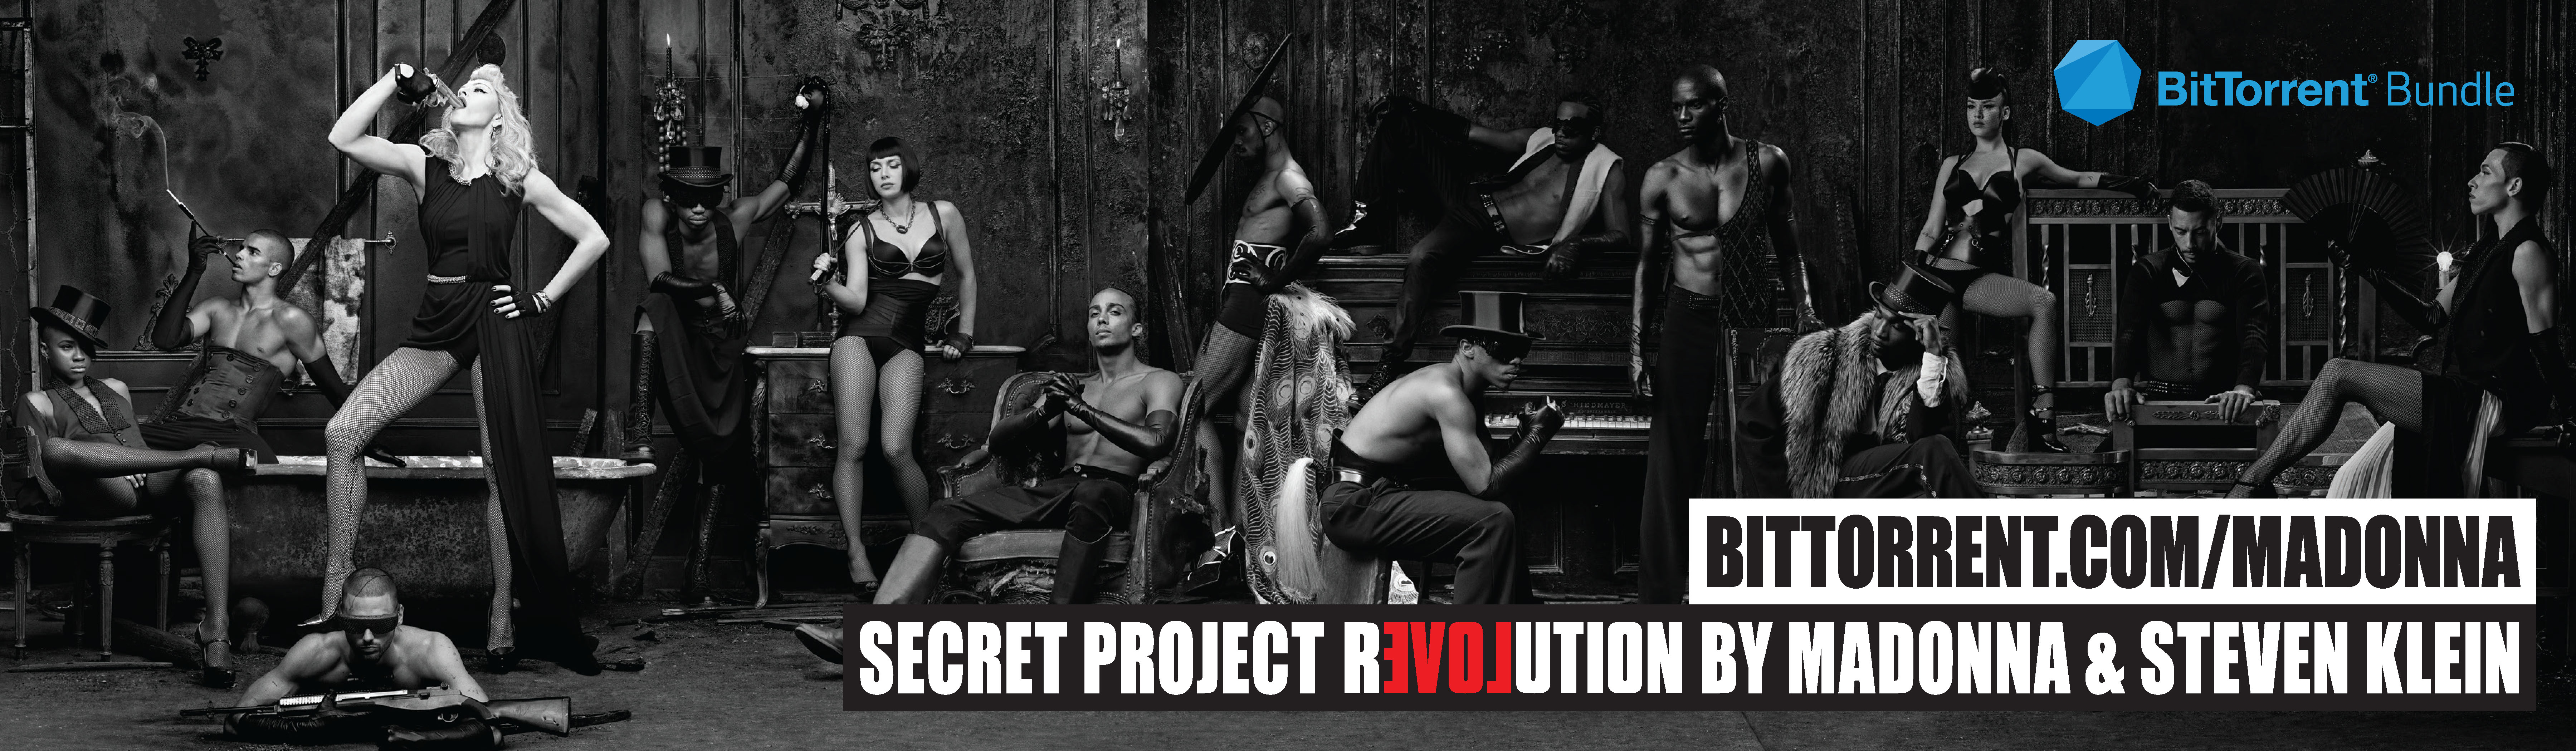 01_Billboard_secretprojectrevolution